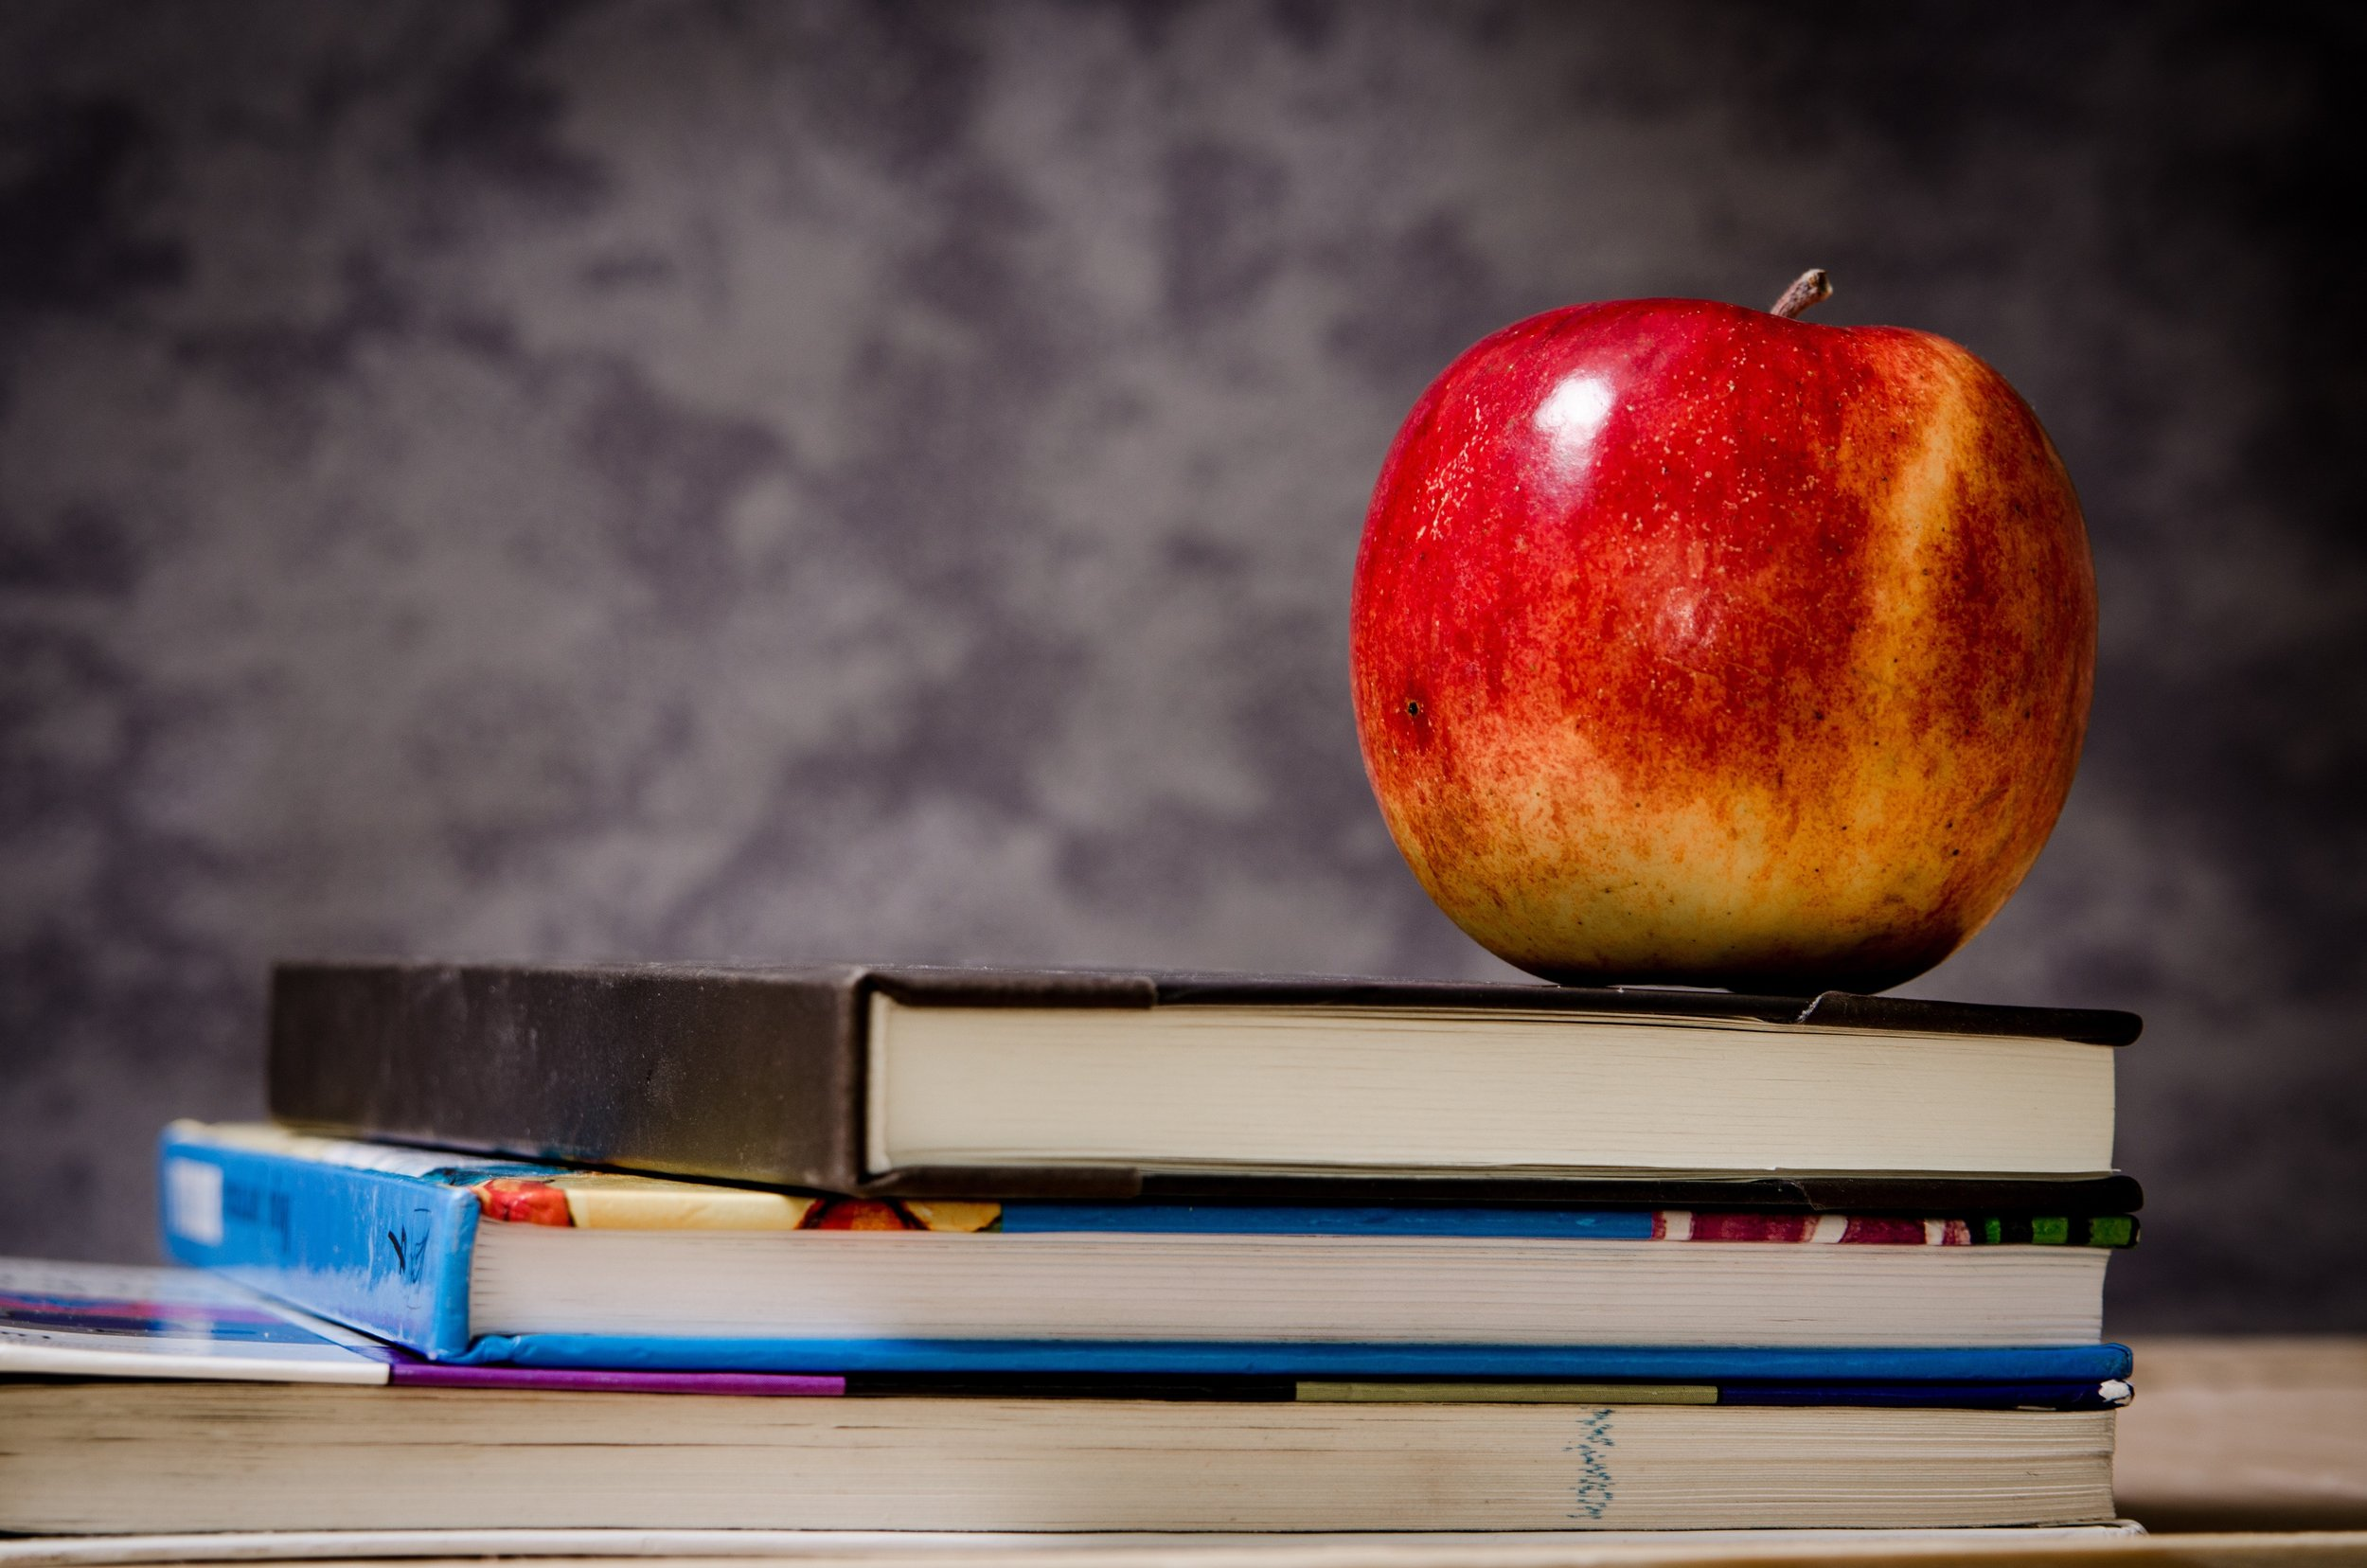 apple-blur-book-stack-256520.jpg